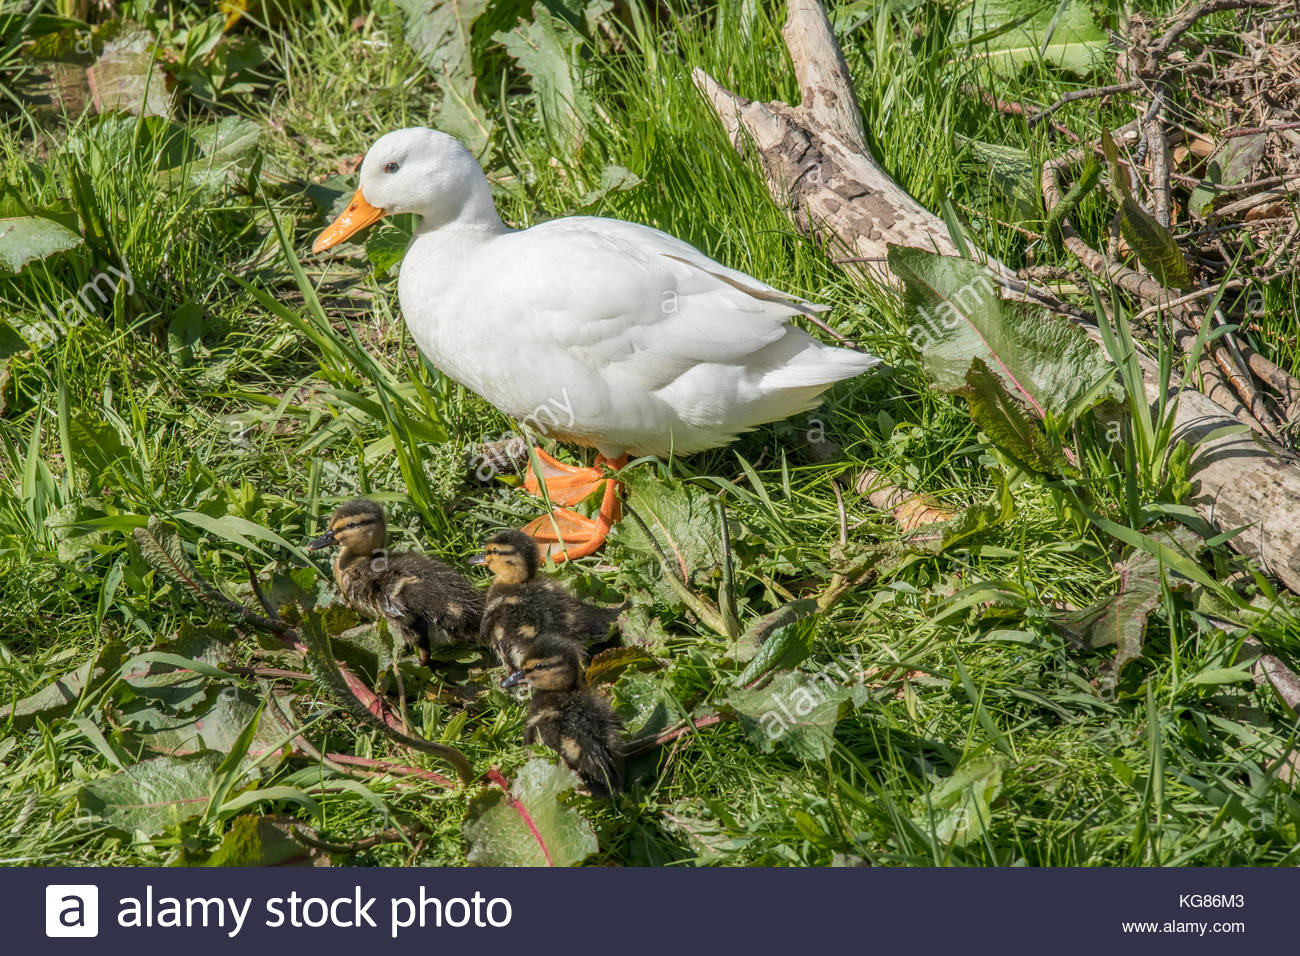 Pekin duck, standing by the river with ducklings - Stock Image